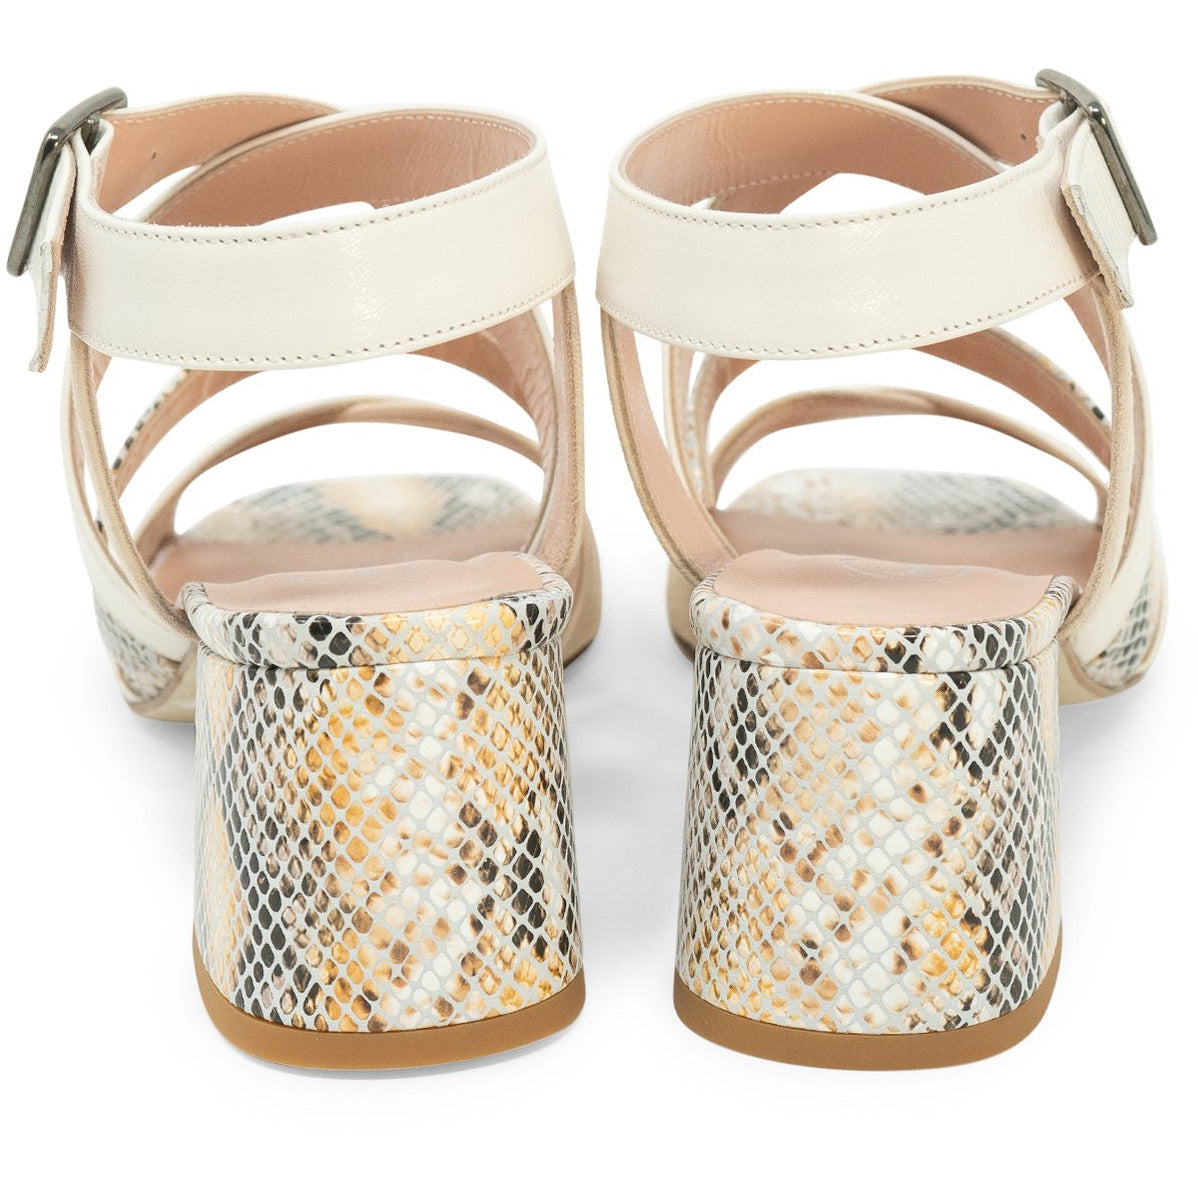 DDL4205 T50 Women Sandals - New Spring Summer 2020 Collection